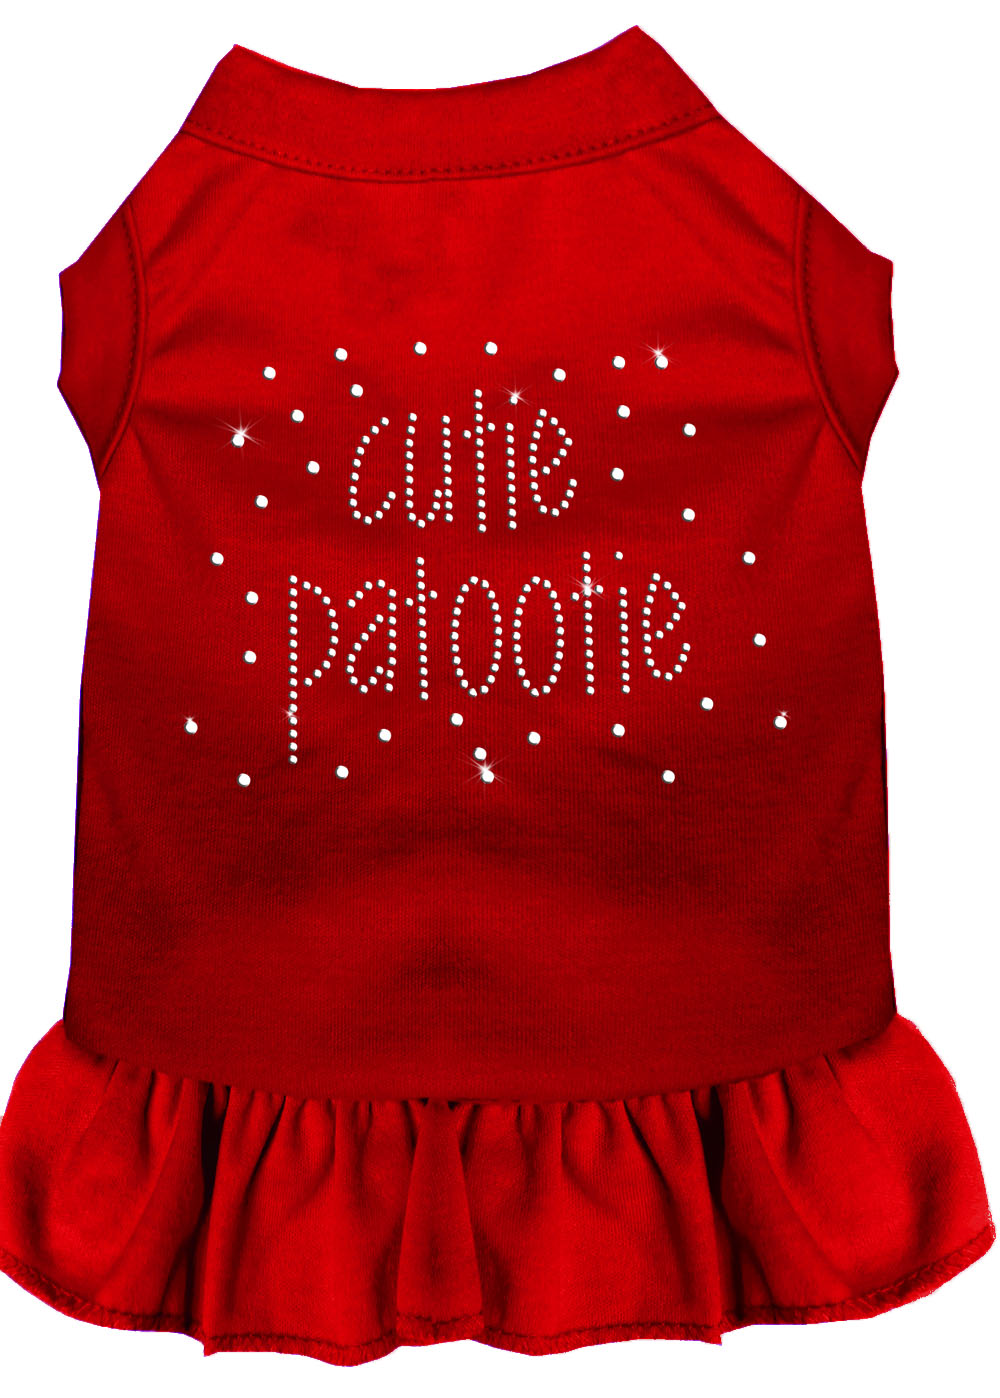 Rhinestone Cutie Patootie Dress Red